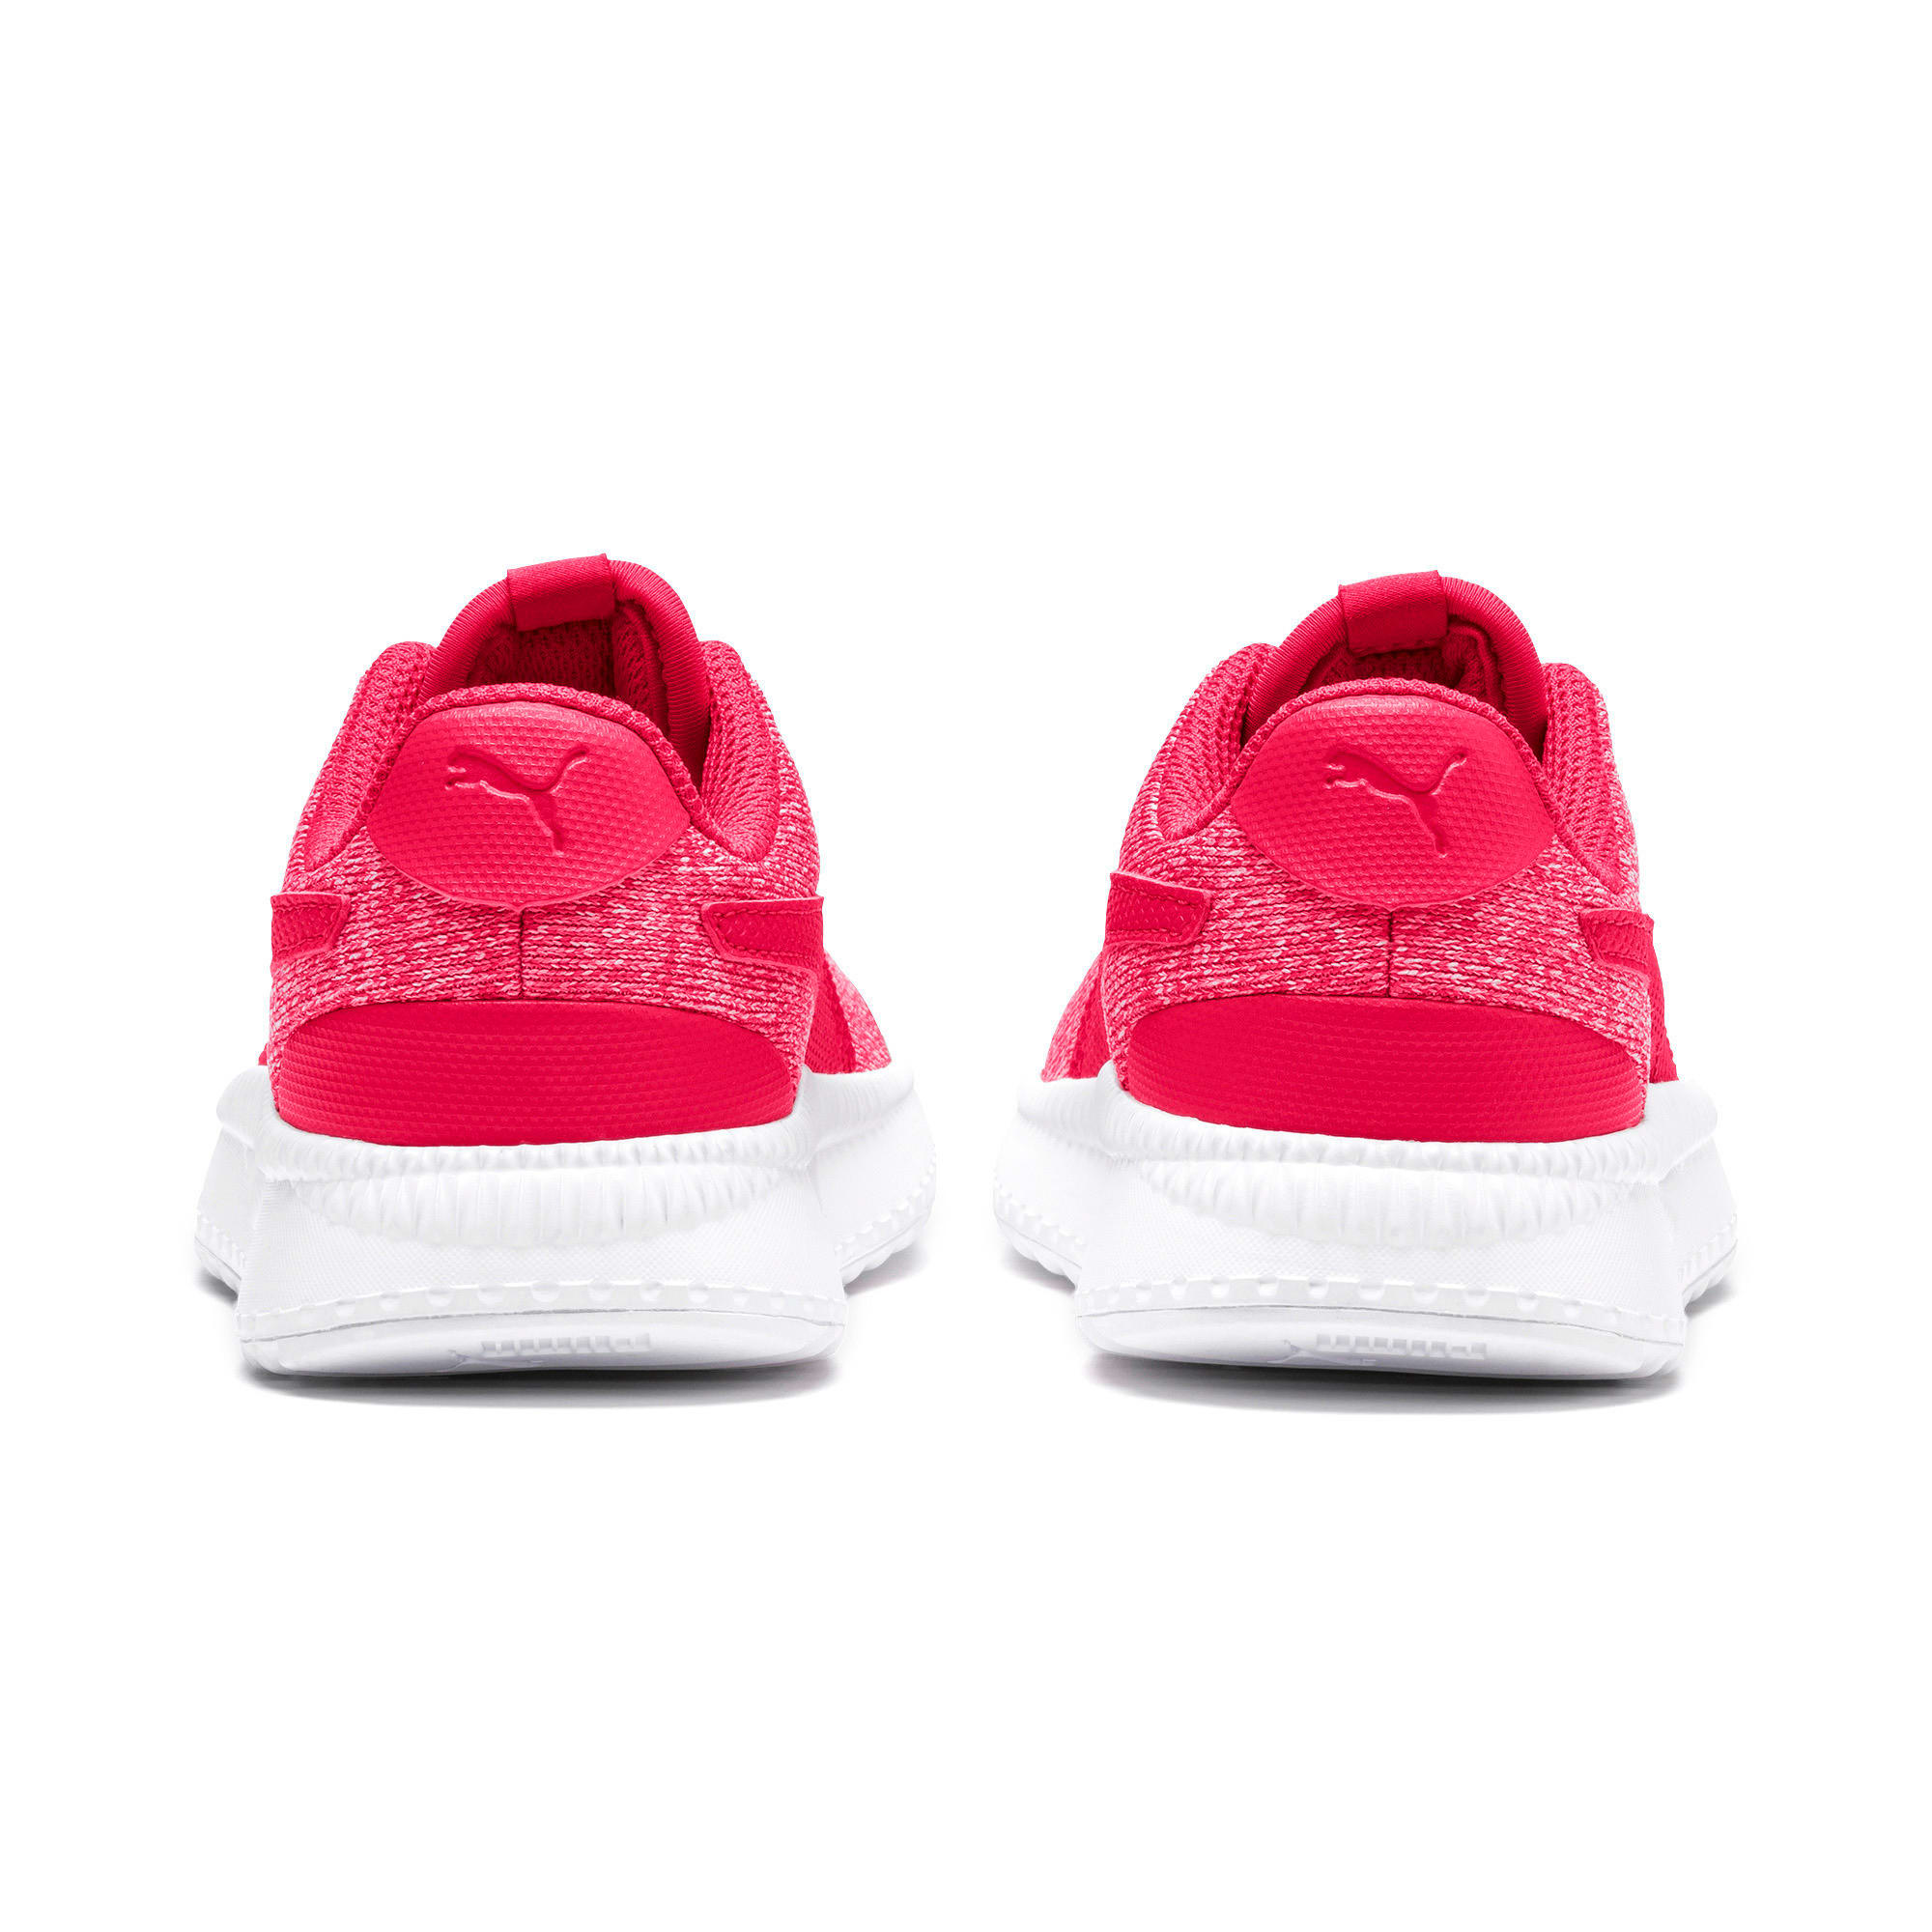 Thumbnail 3 of Pacer Next FS Knit AC Kids Sneaker, Nrgy Rose-Puma White, medium